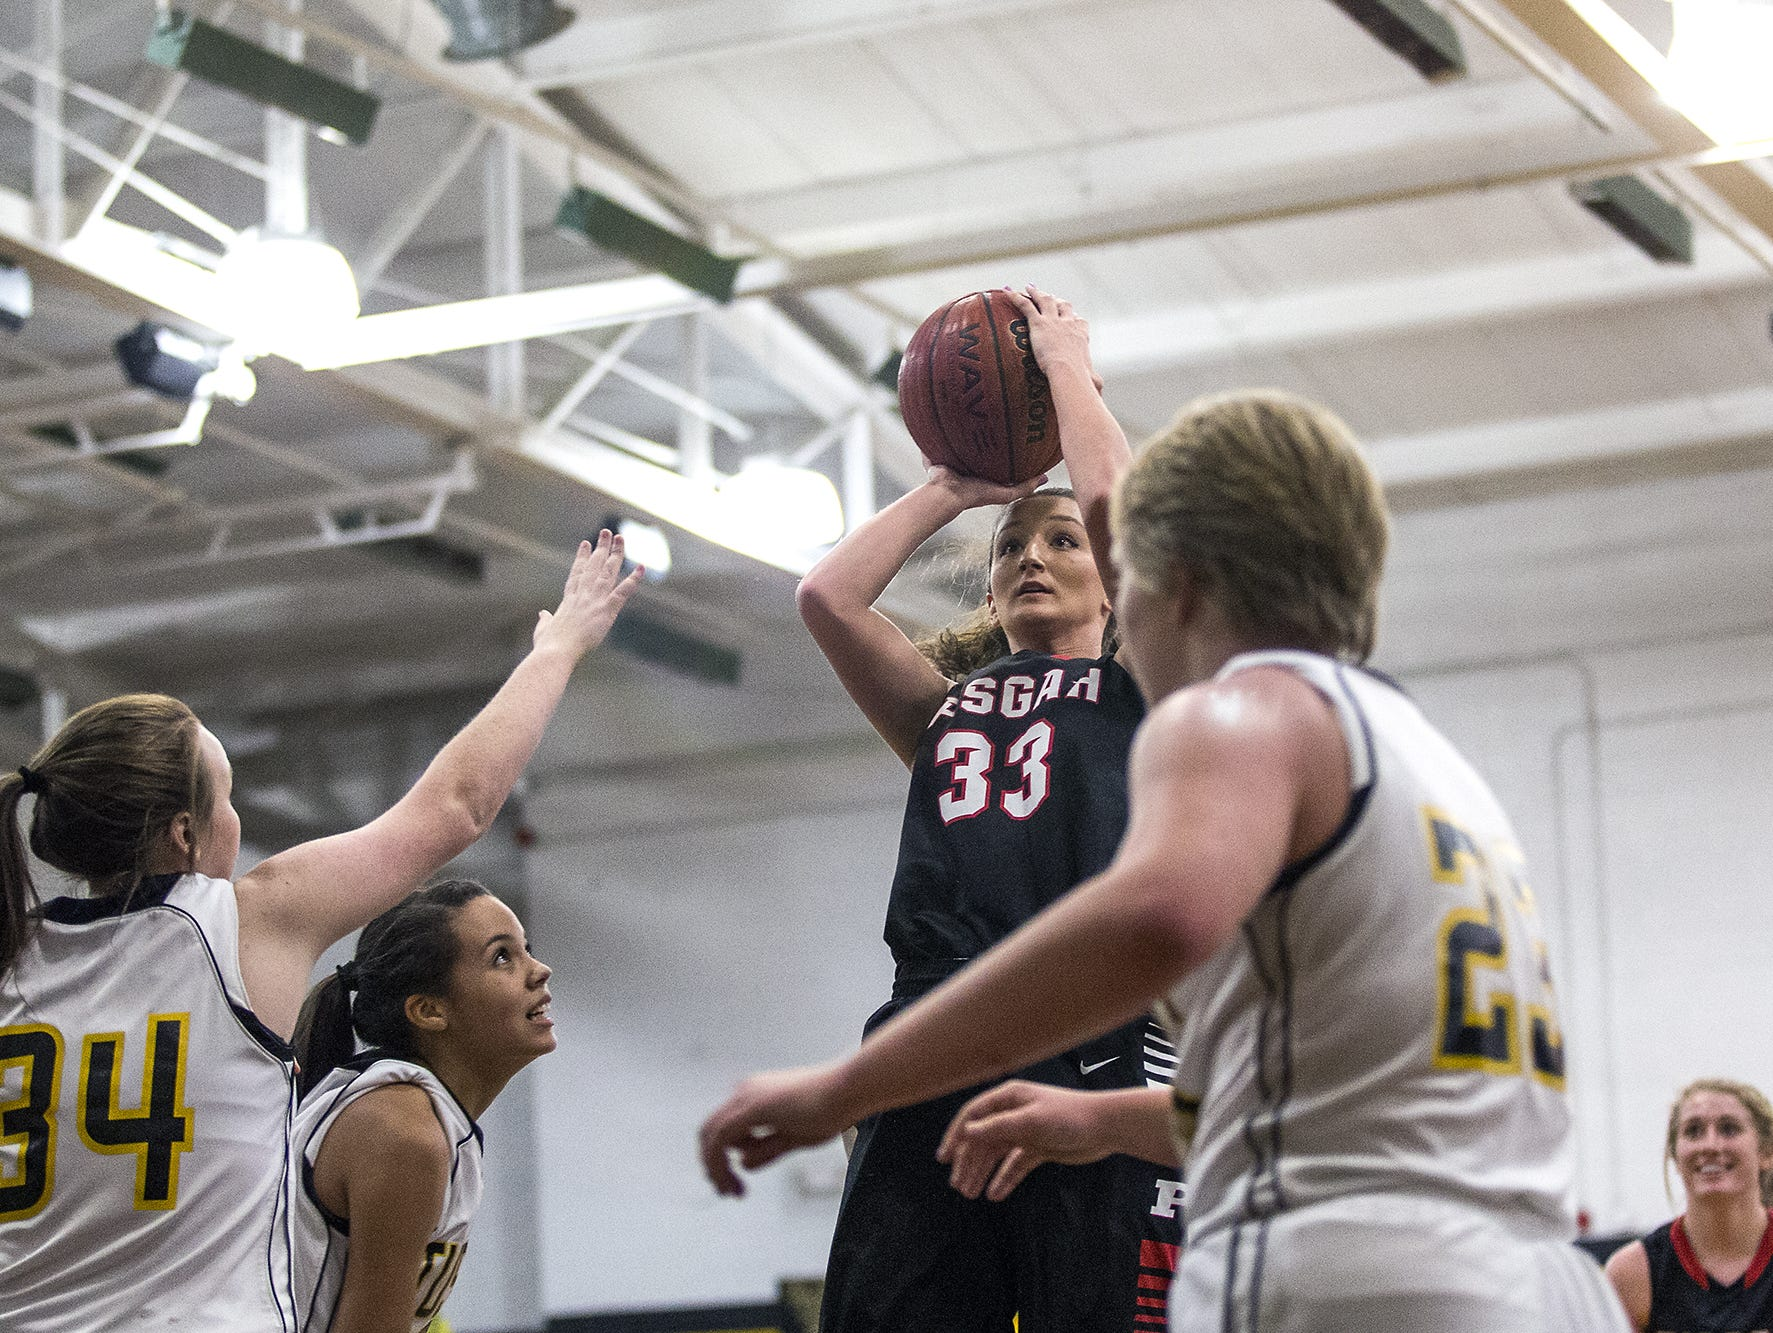 Pisgah's Brooklyn Allen has committed to play college basketball for Appalachian State.